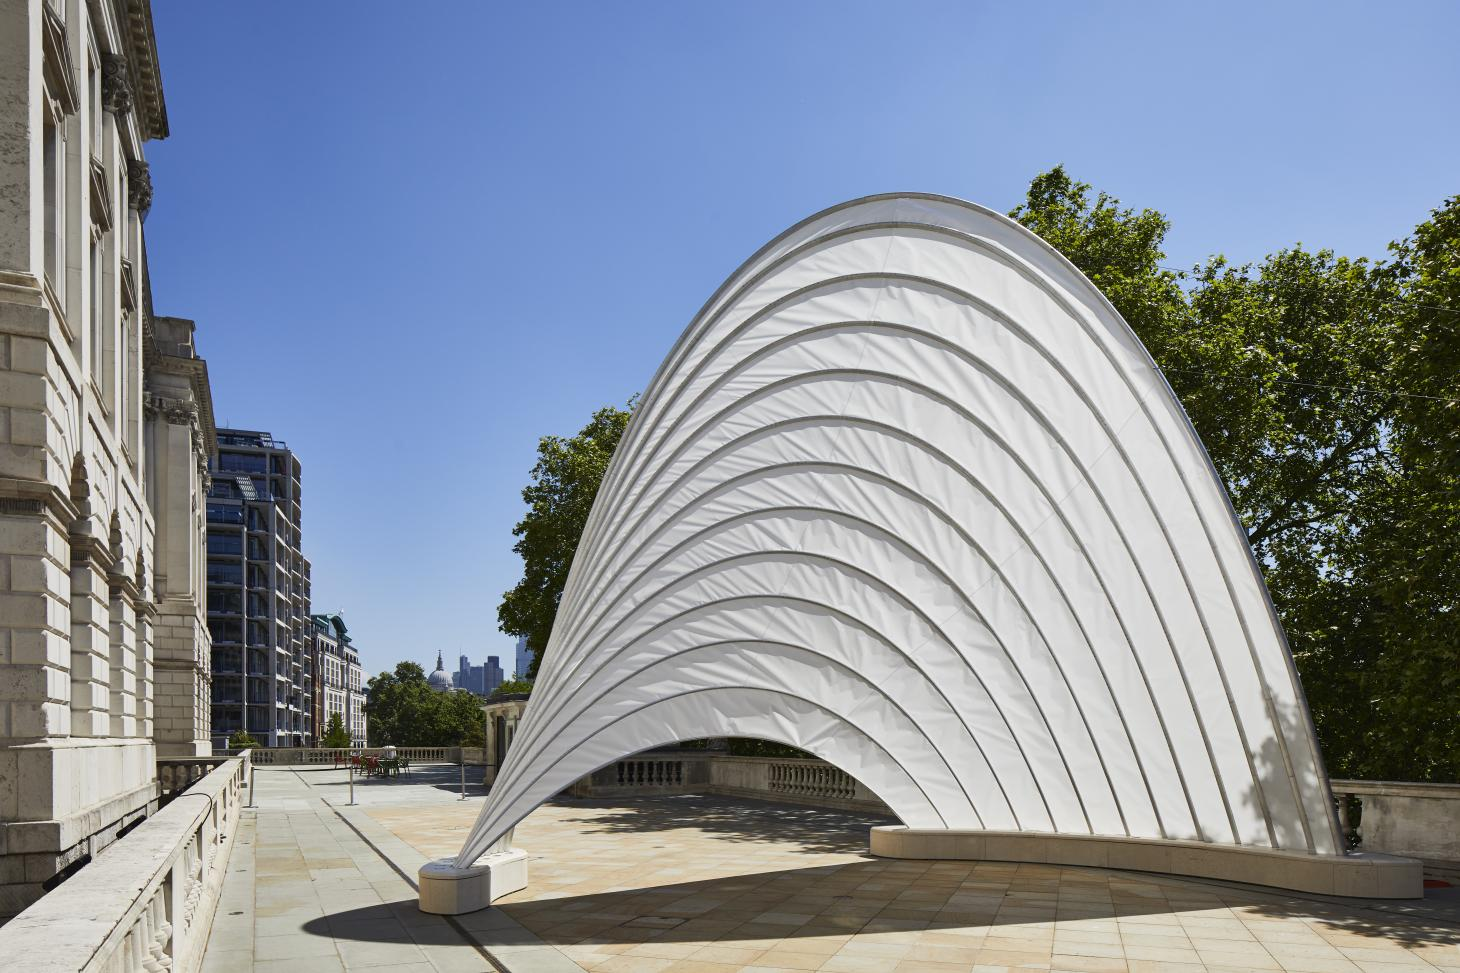 White sail-like pavilion by Ini Archibong installed at Somerset House for London Design Biennale